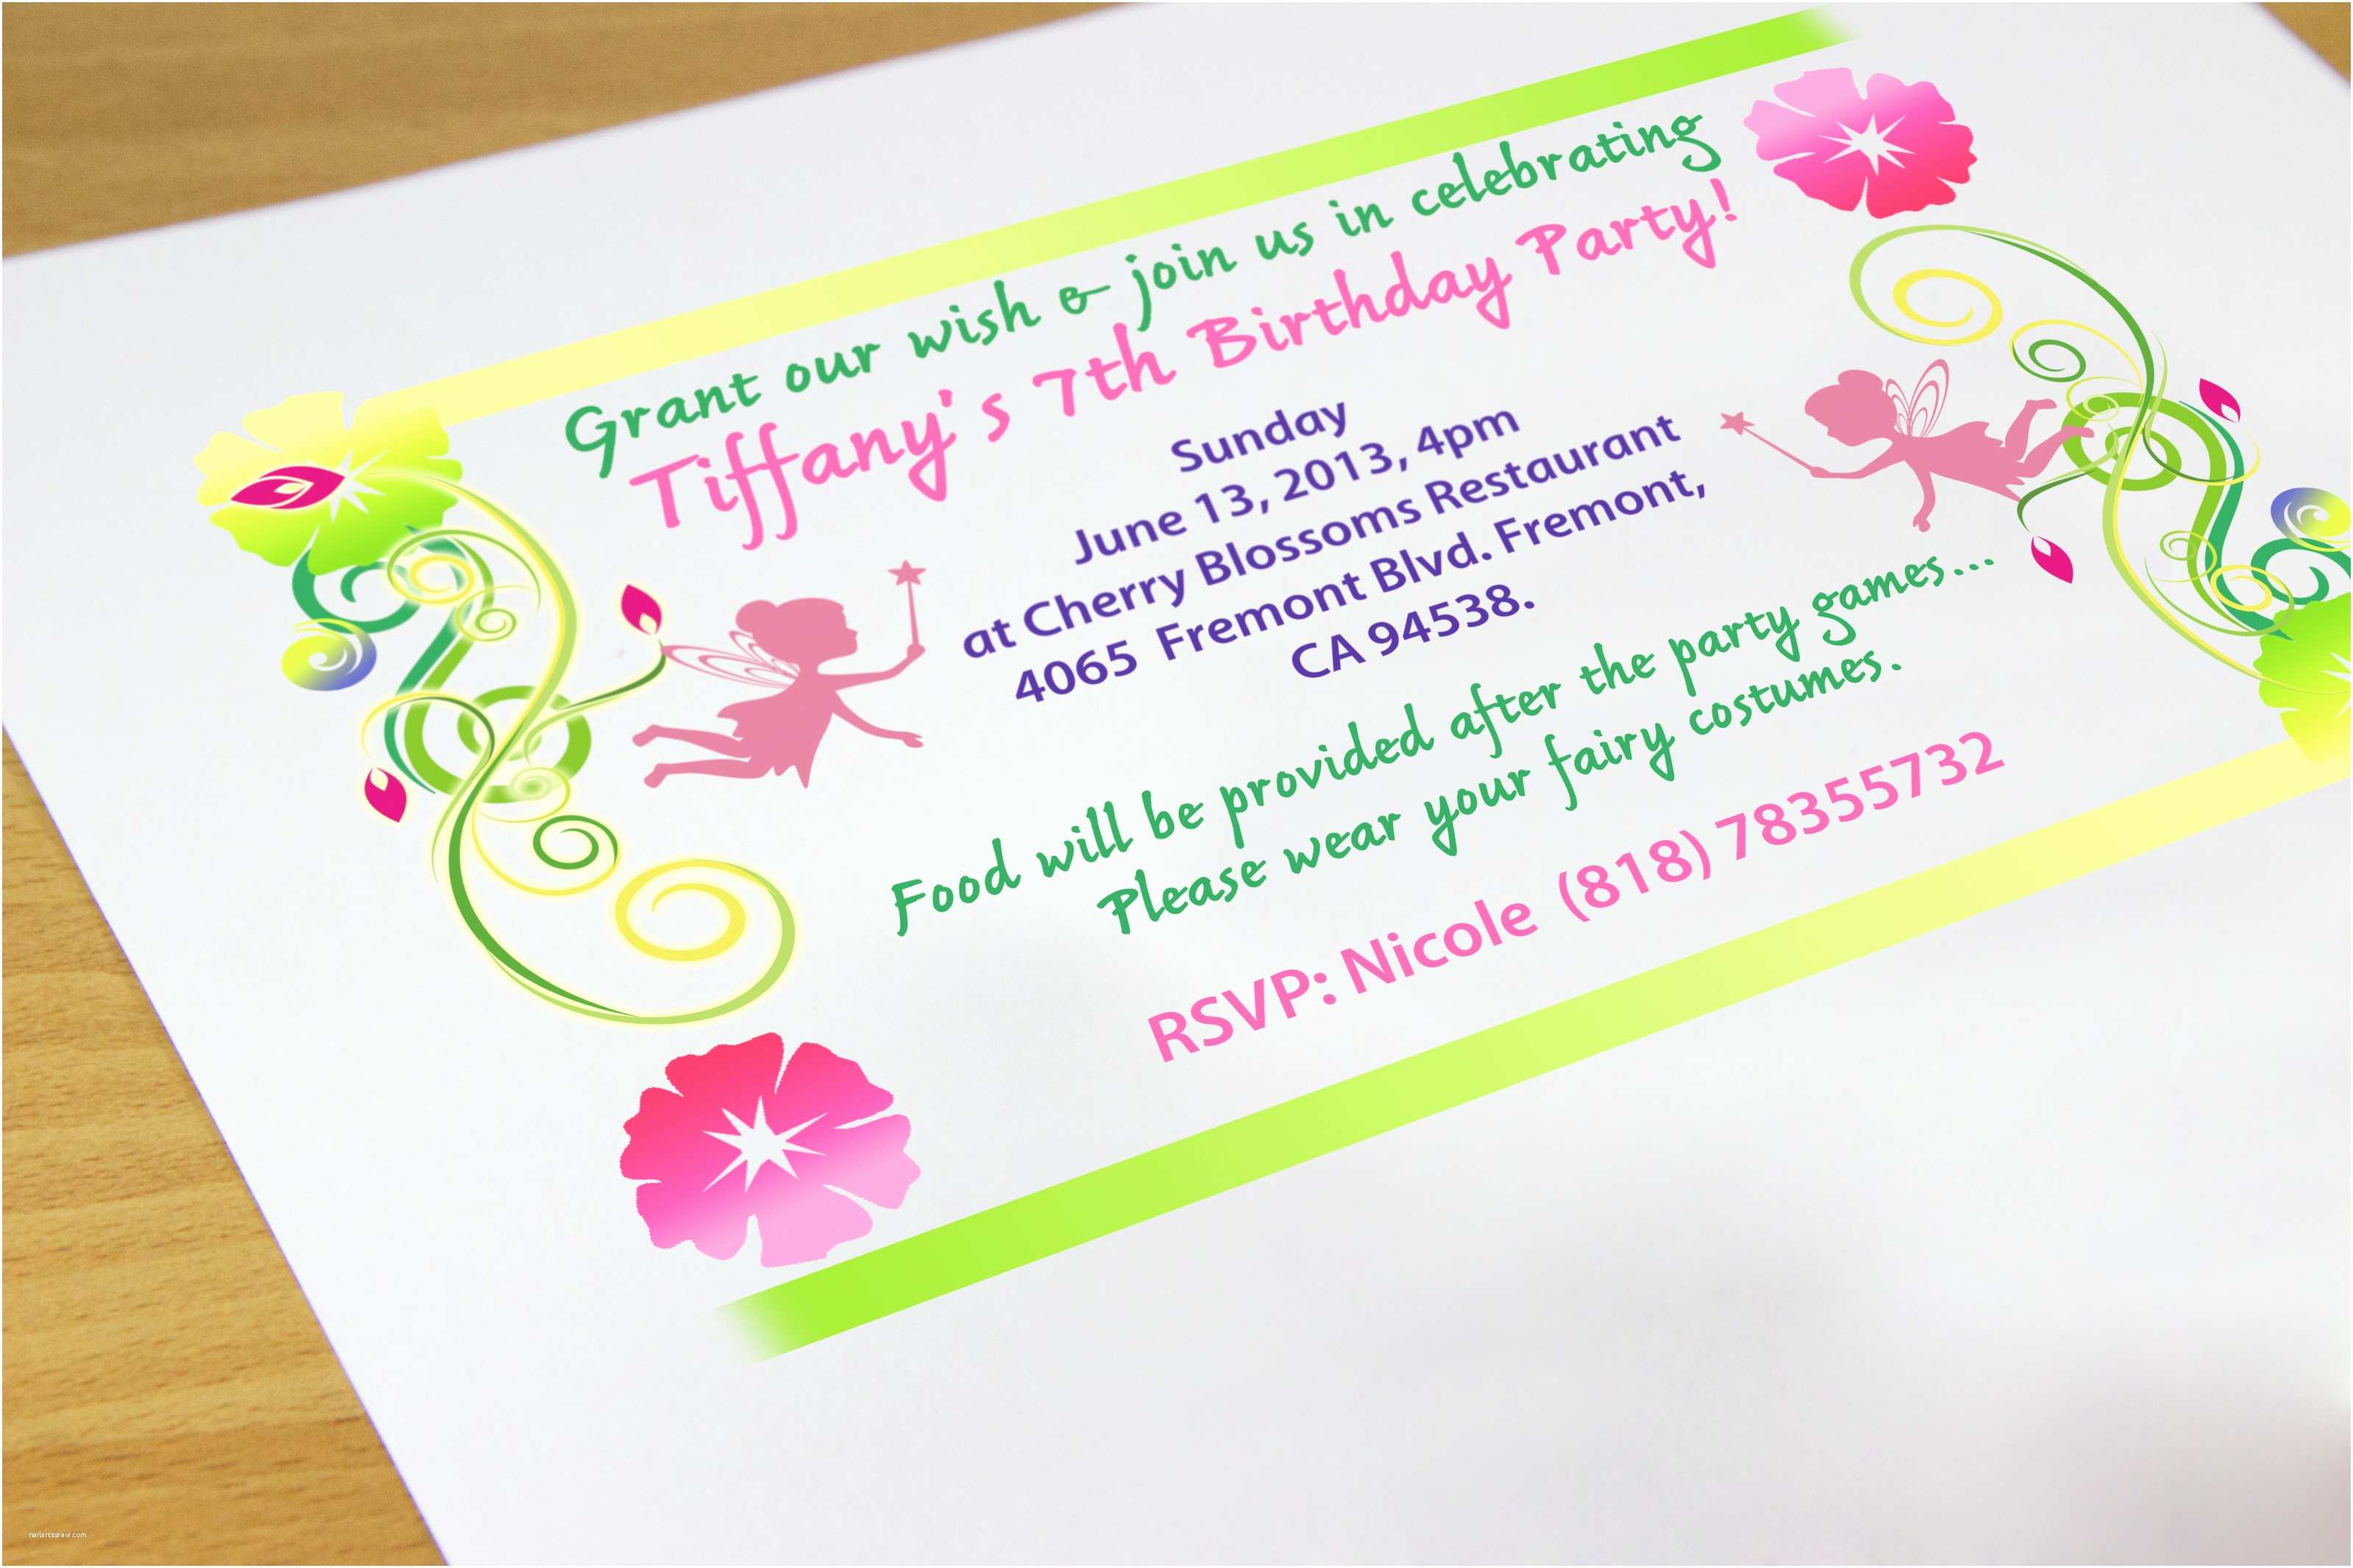 Making Wedding Invitations at Home How to Make Party Invitations